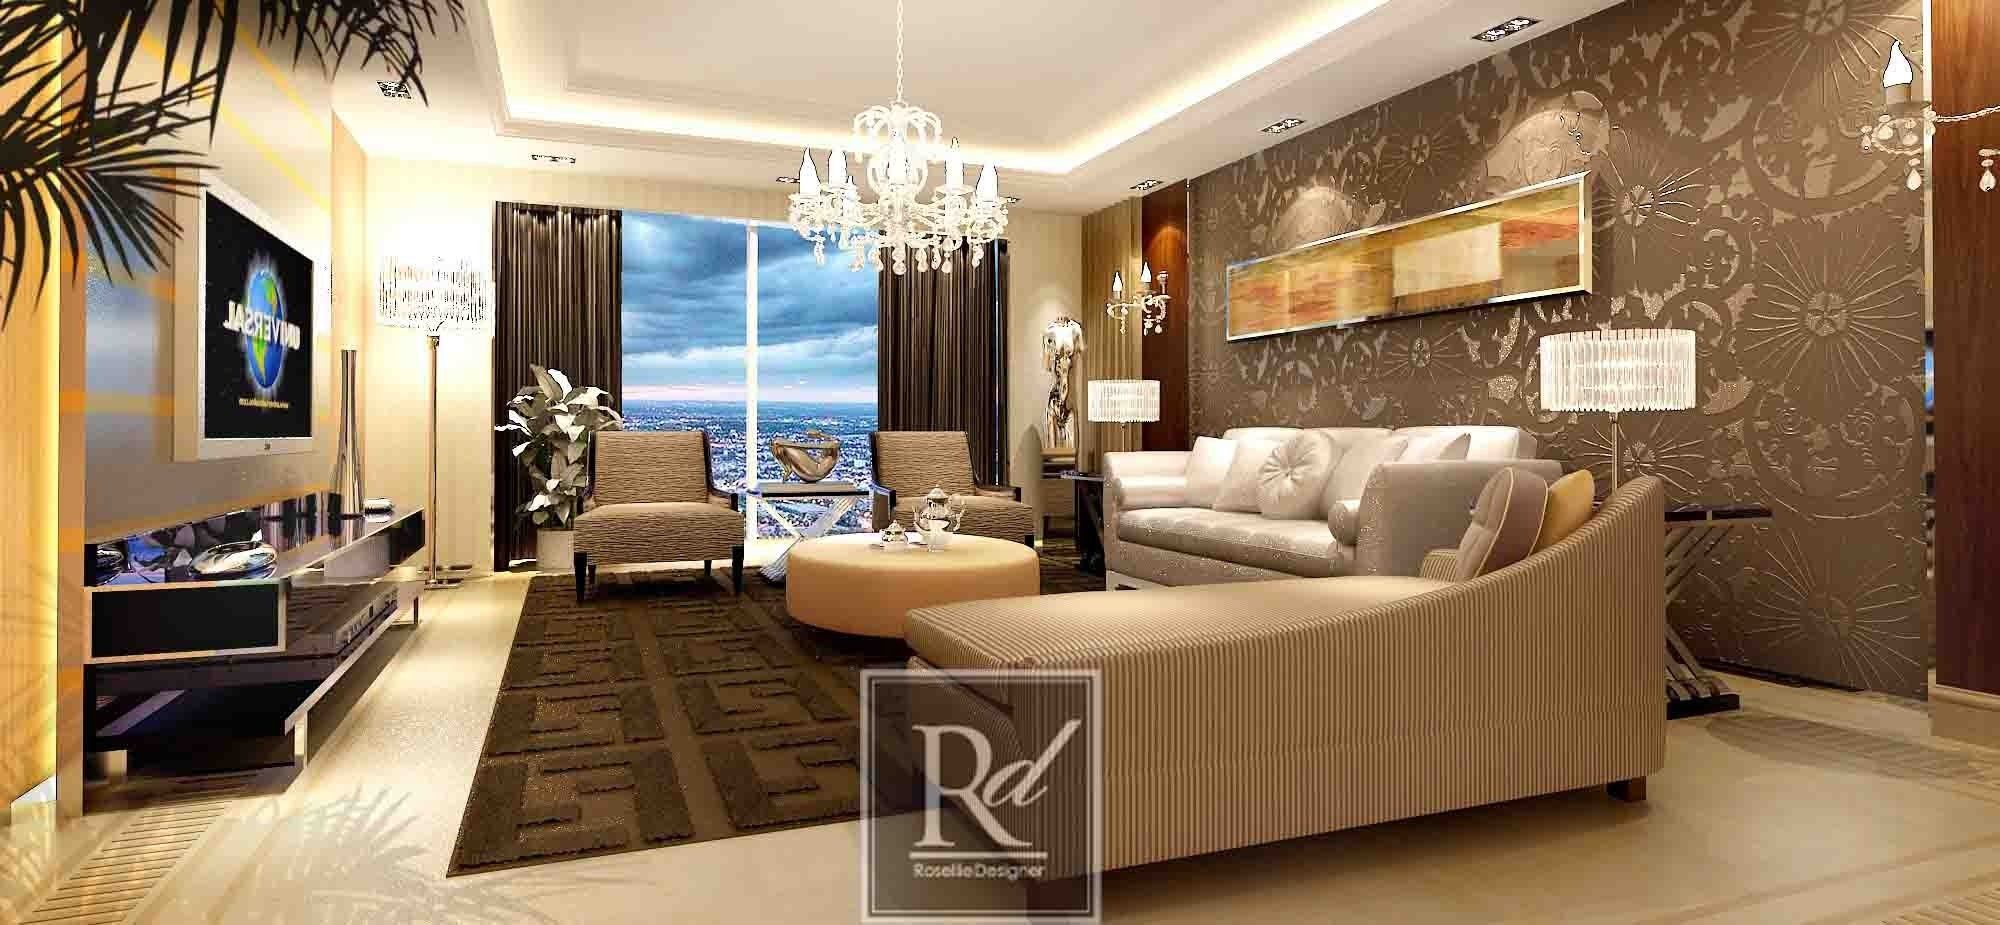 Incredible 3D Rendering Interior Design 2000 x 925 · 226 kB · jpeg